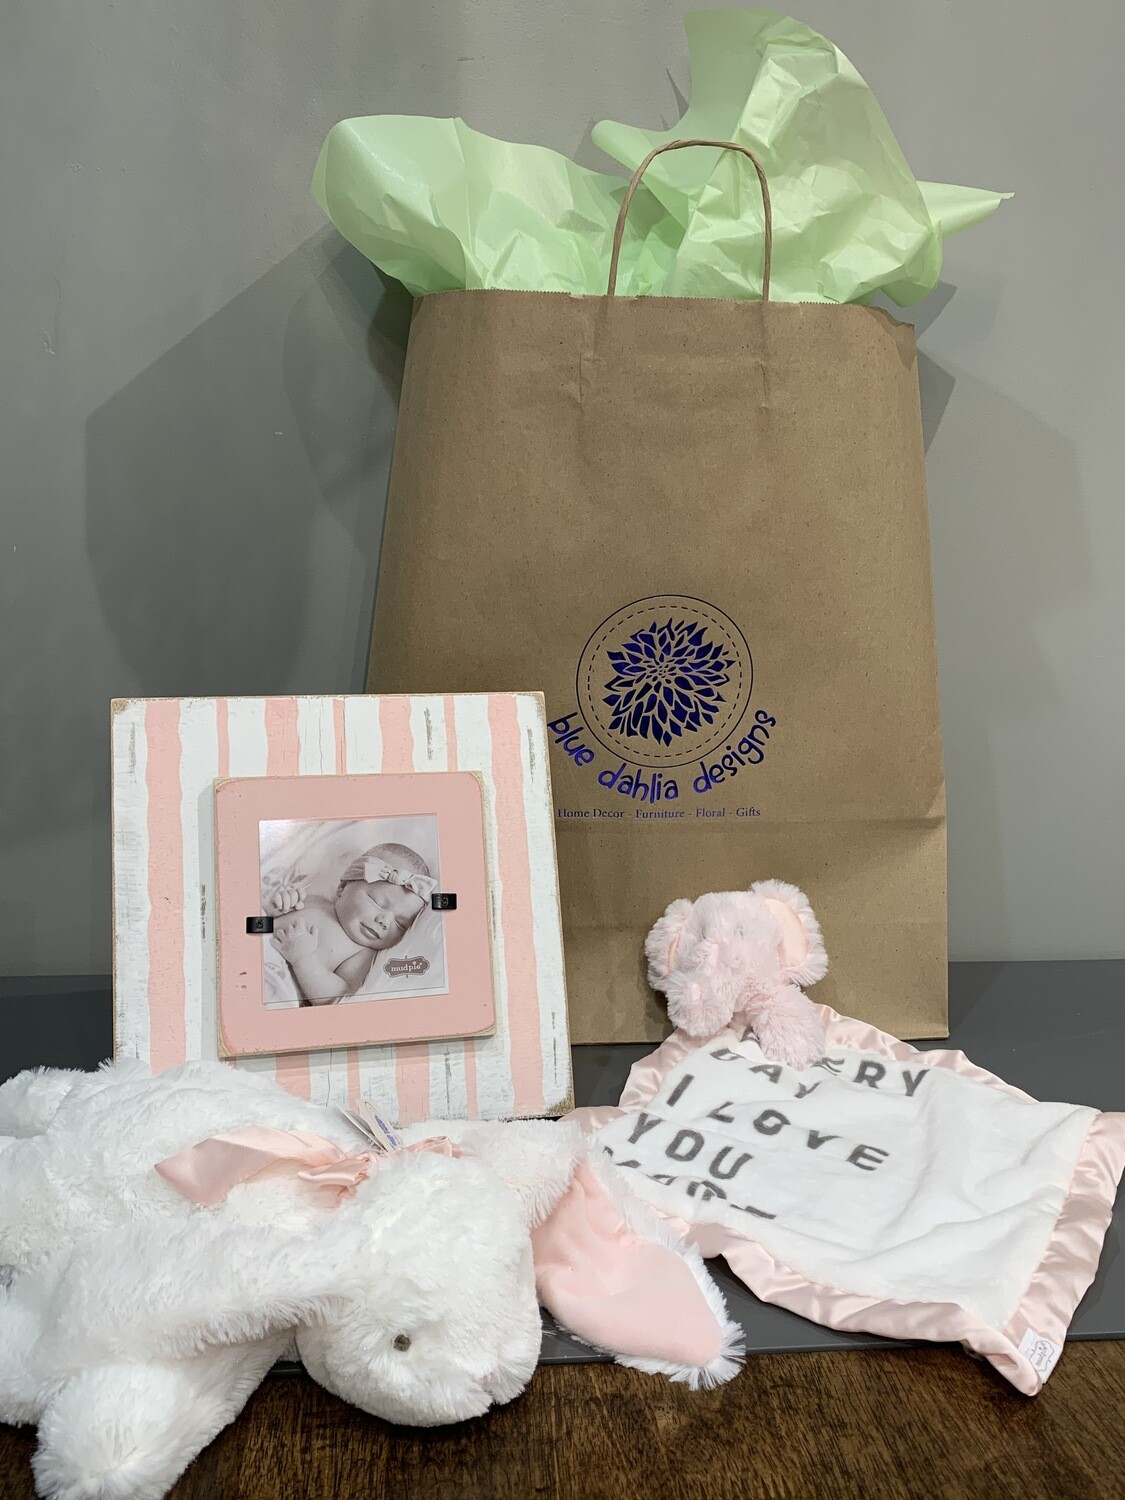 It's A Girl! Gift Box